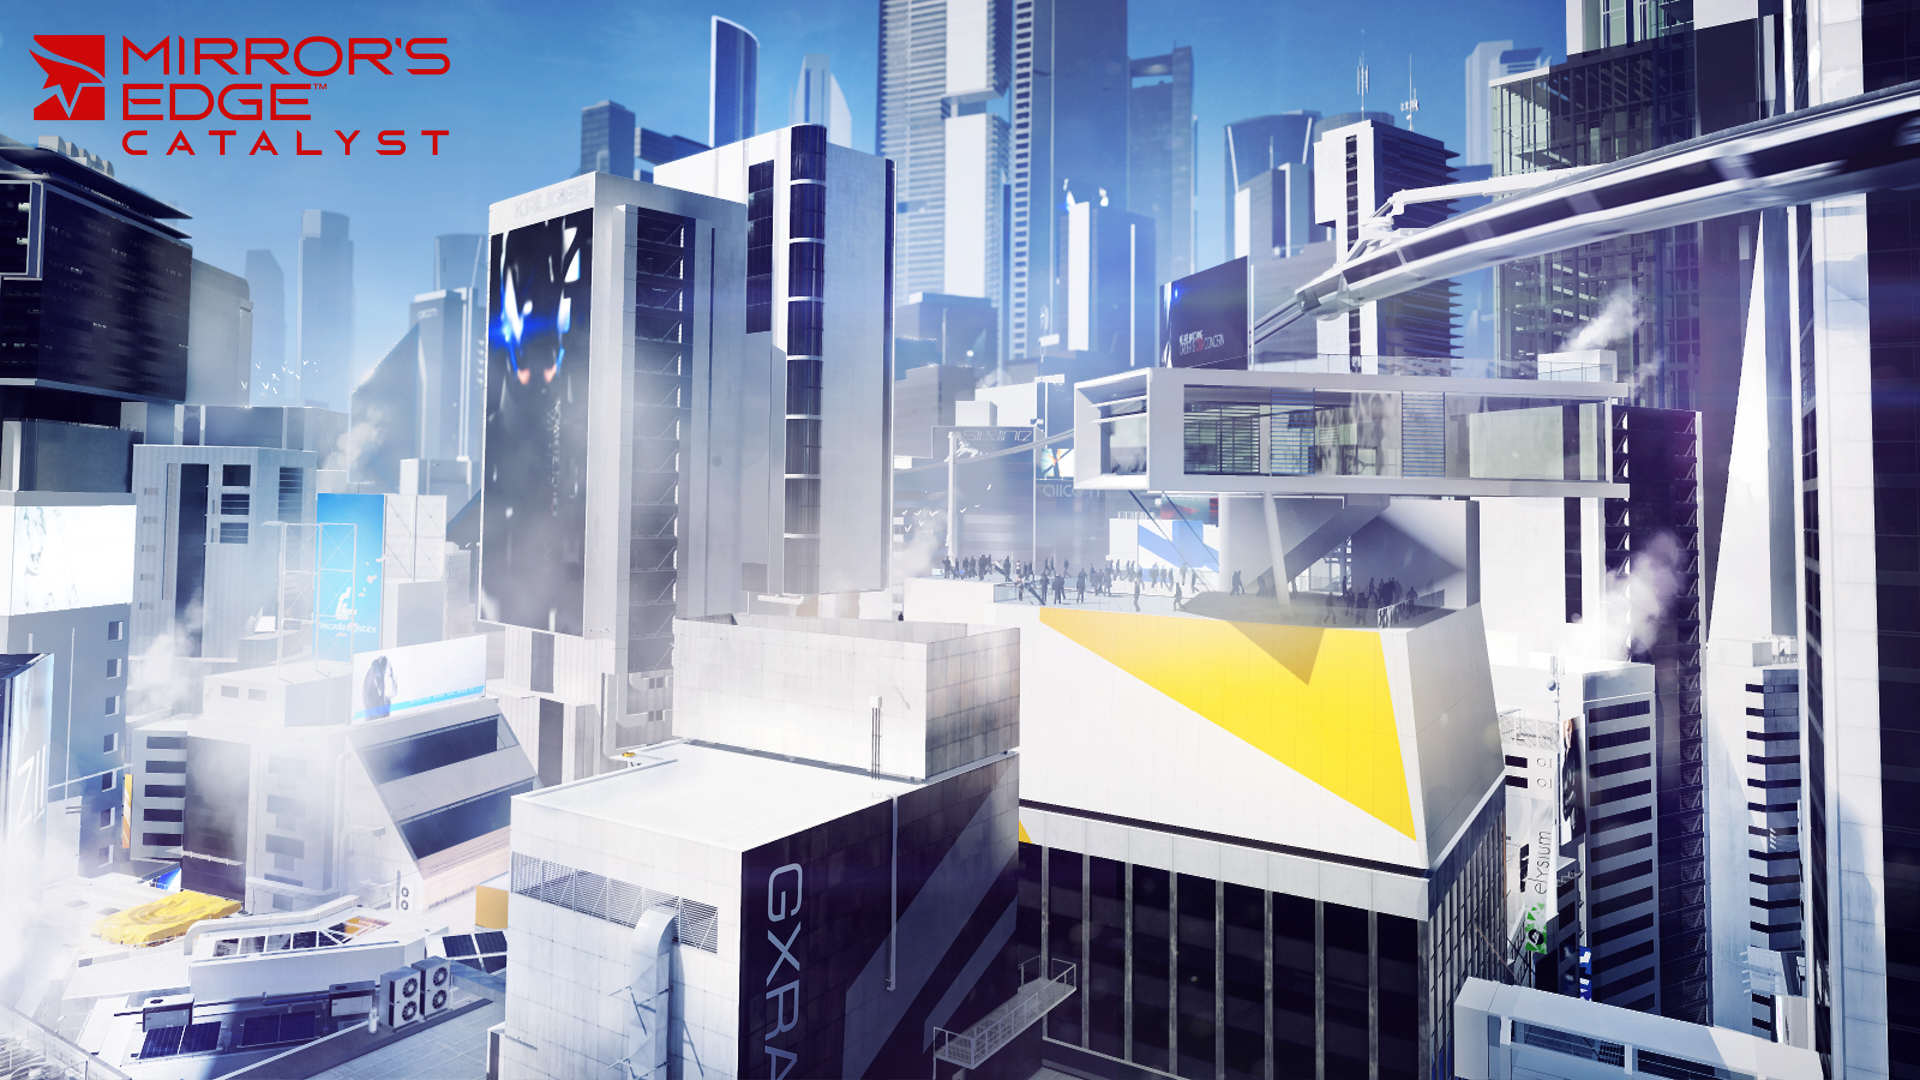 mirrorsedgecatalst gc web screen 02 cityvista wm Mirrors Edge Catalyst Doesnt Quite Stick The Landing